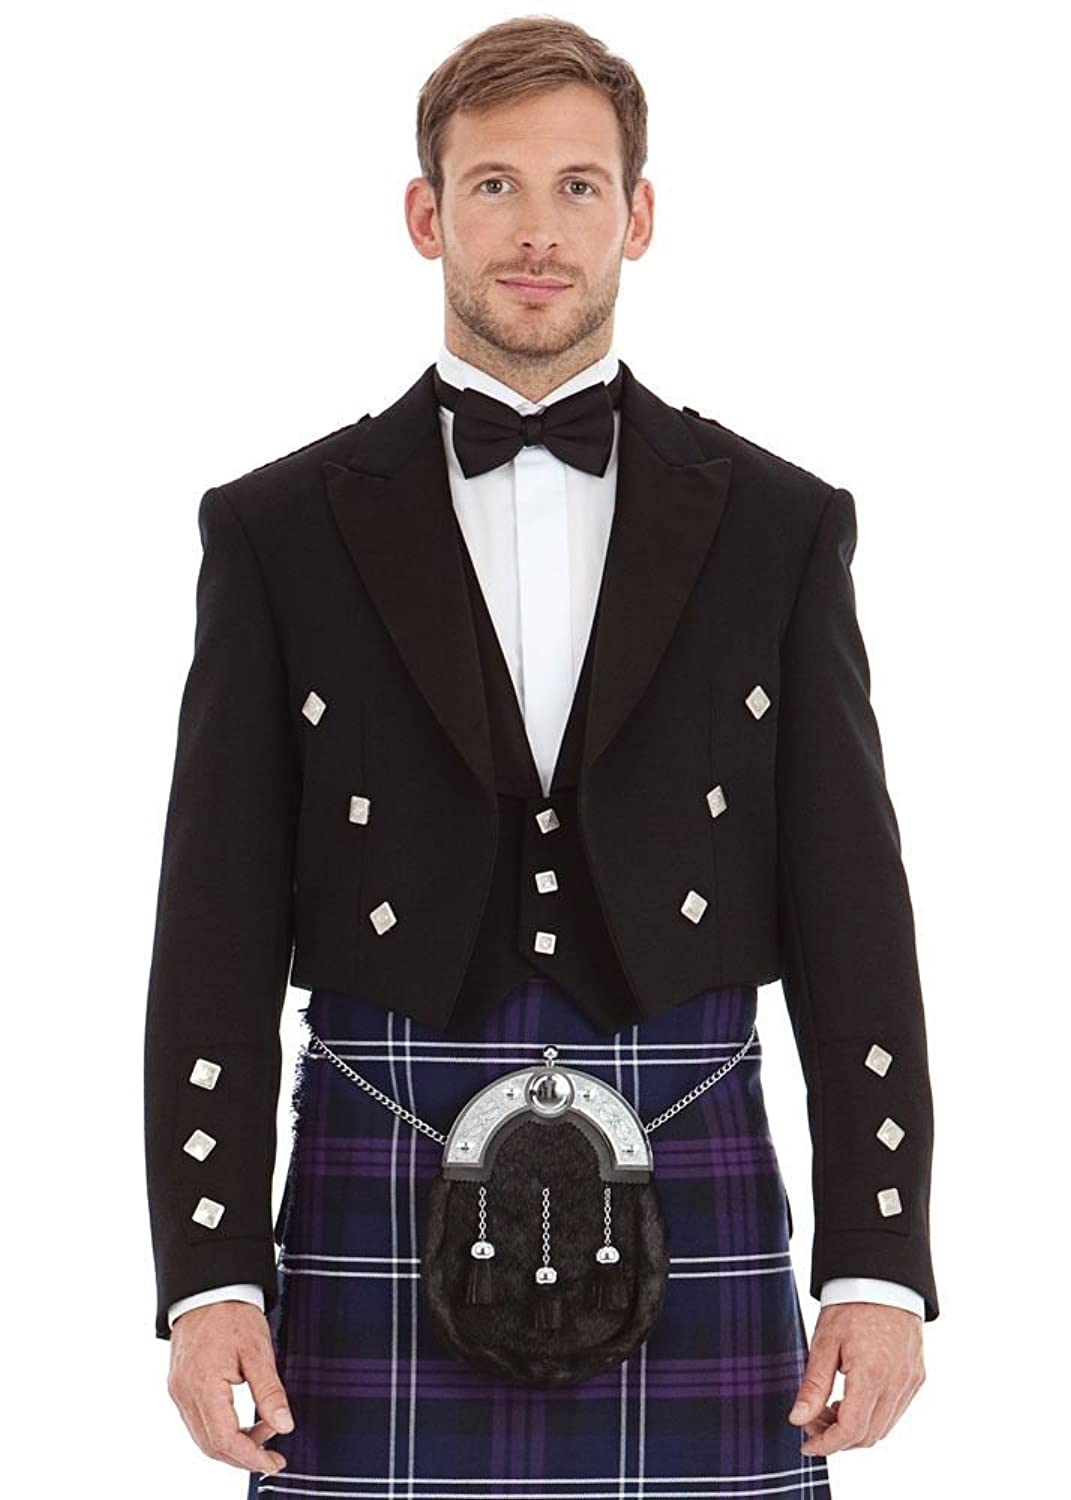 M�nner Scottish Black Prince Charlie Kilt Jacke & 46 Long Weste